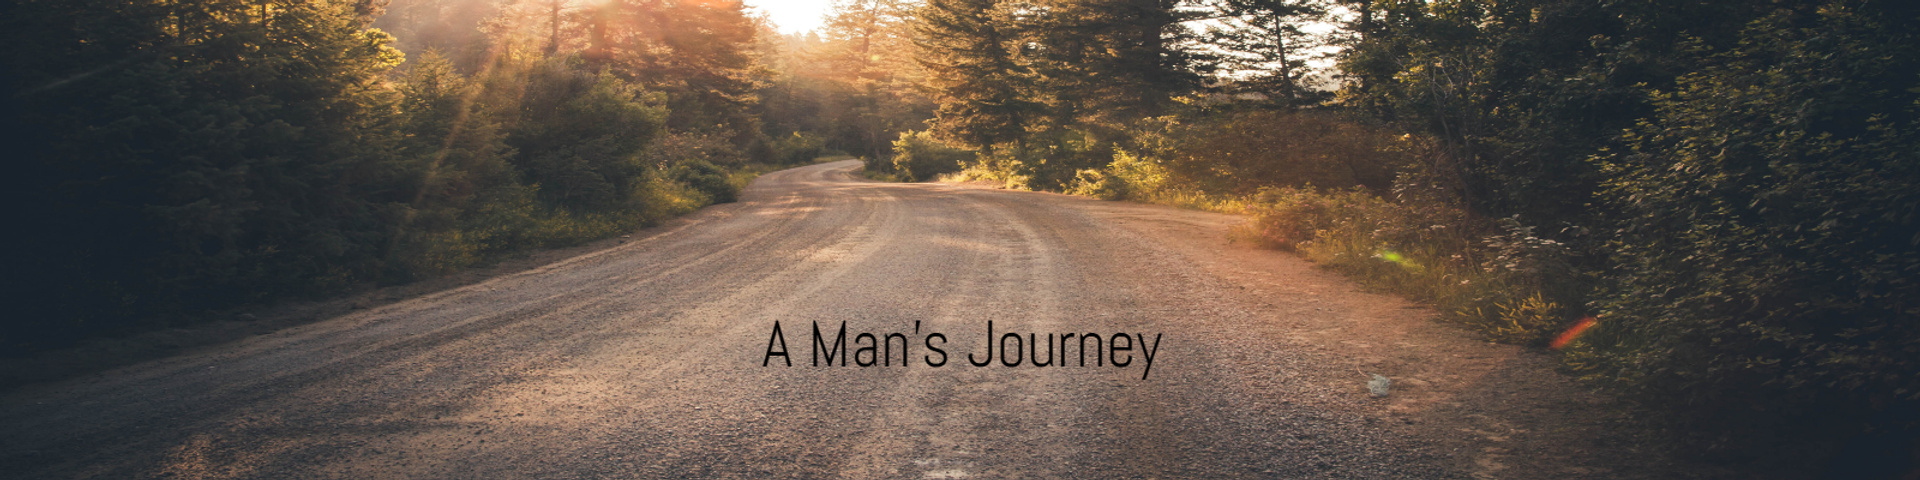 A Man's journey poster